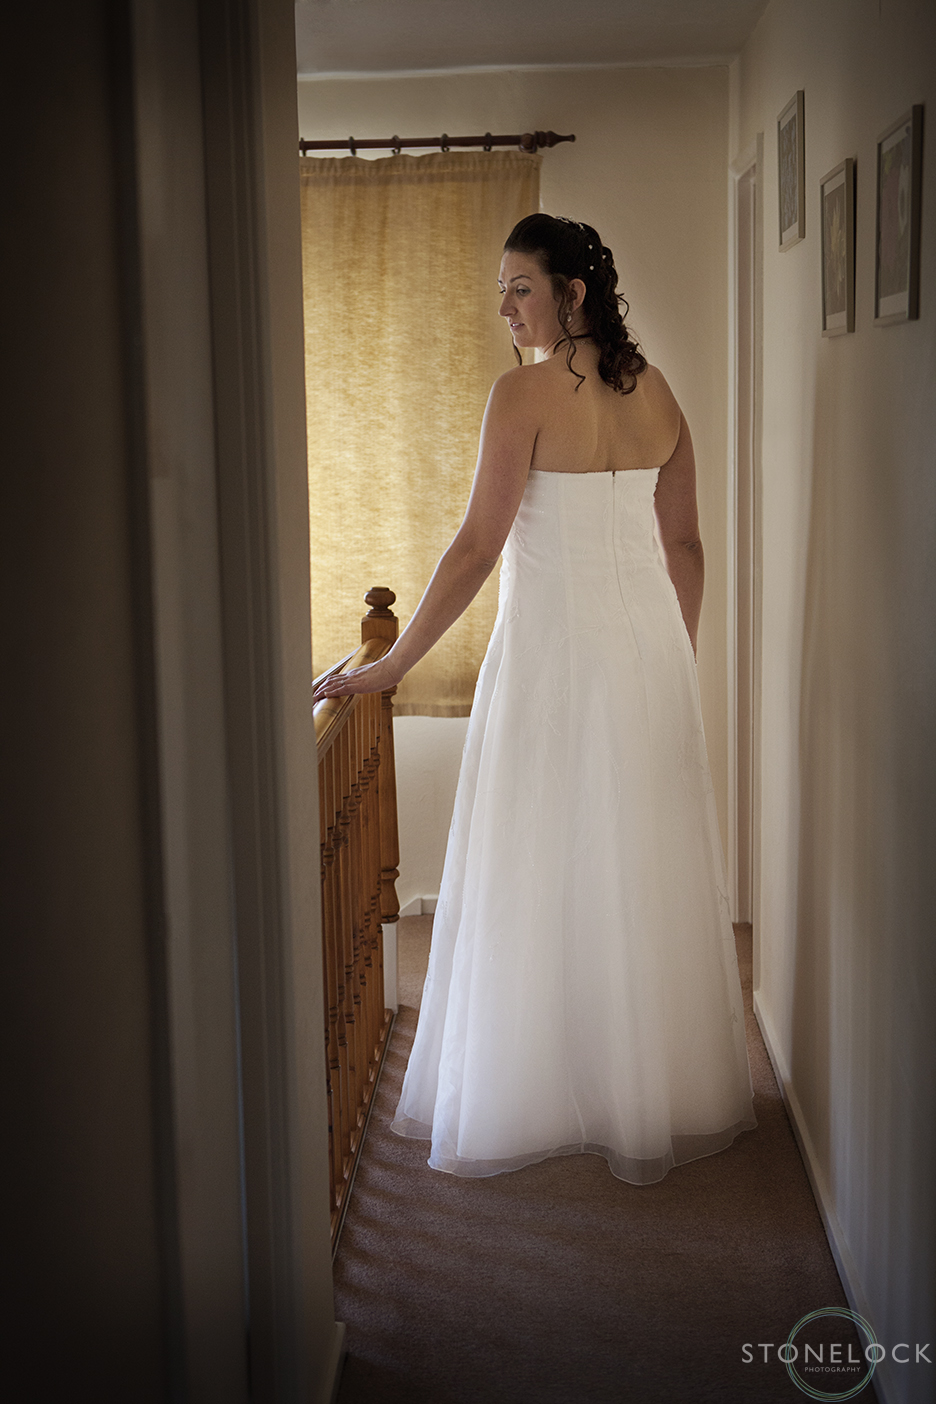 A bride stands at the end of a hallway in her wedding dress lit by a golden sunlight coming through the window